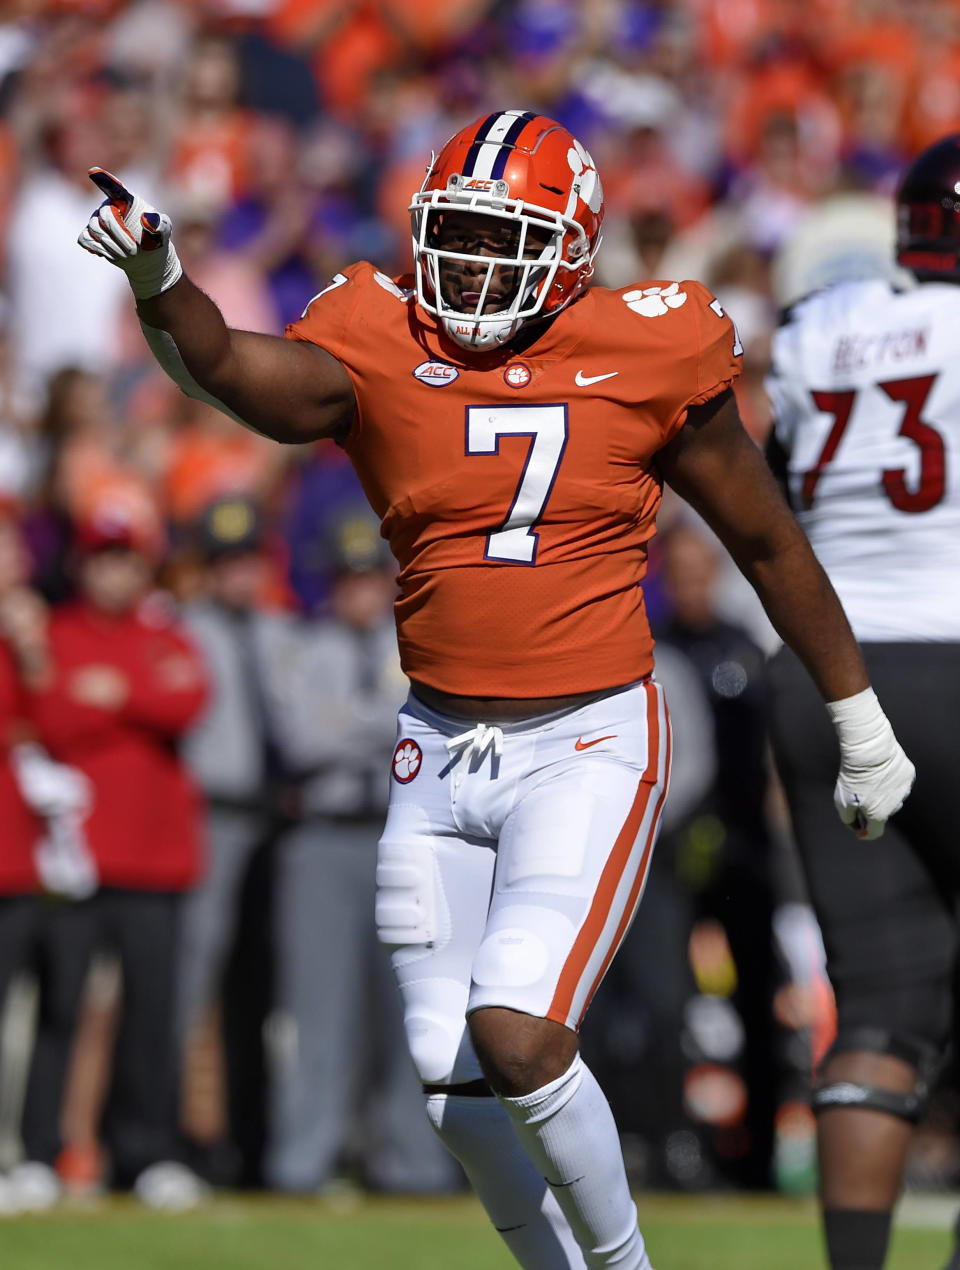 Clemson's Austin Bryant reacts after a tackle during the first half of an NCAA college football game against Louisville Saturday, Nov. 3, 2018, in Clemson, S.C. (AP Photo/Richard Shiro)